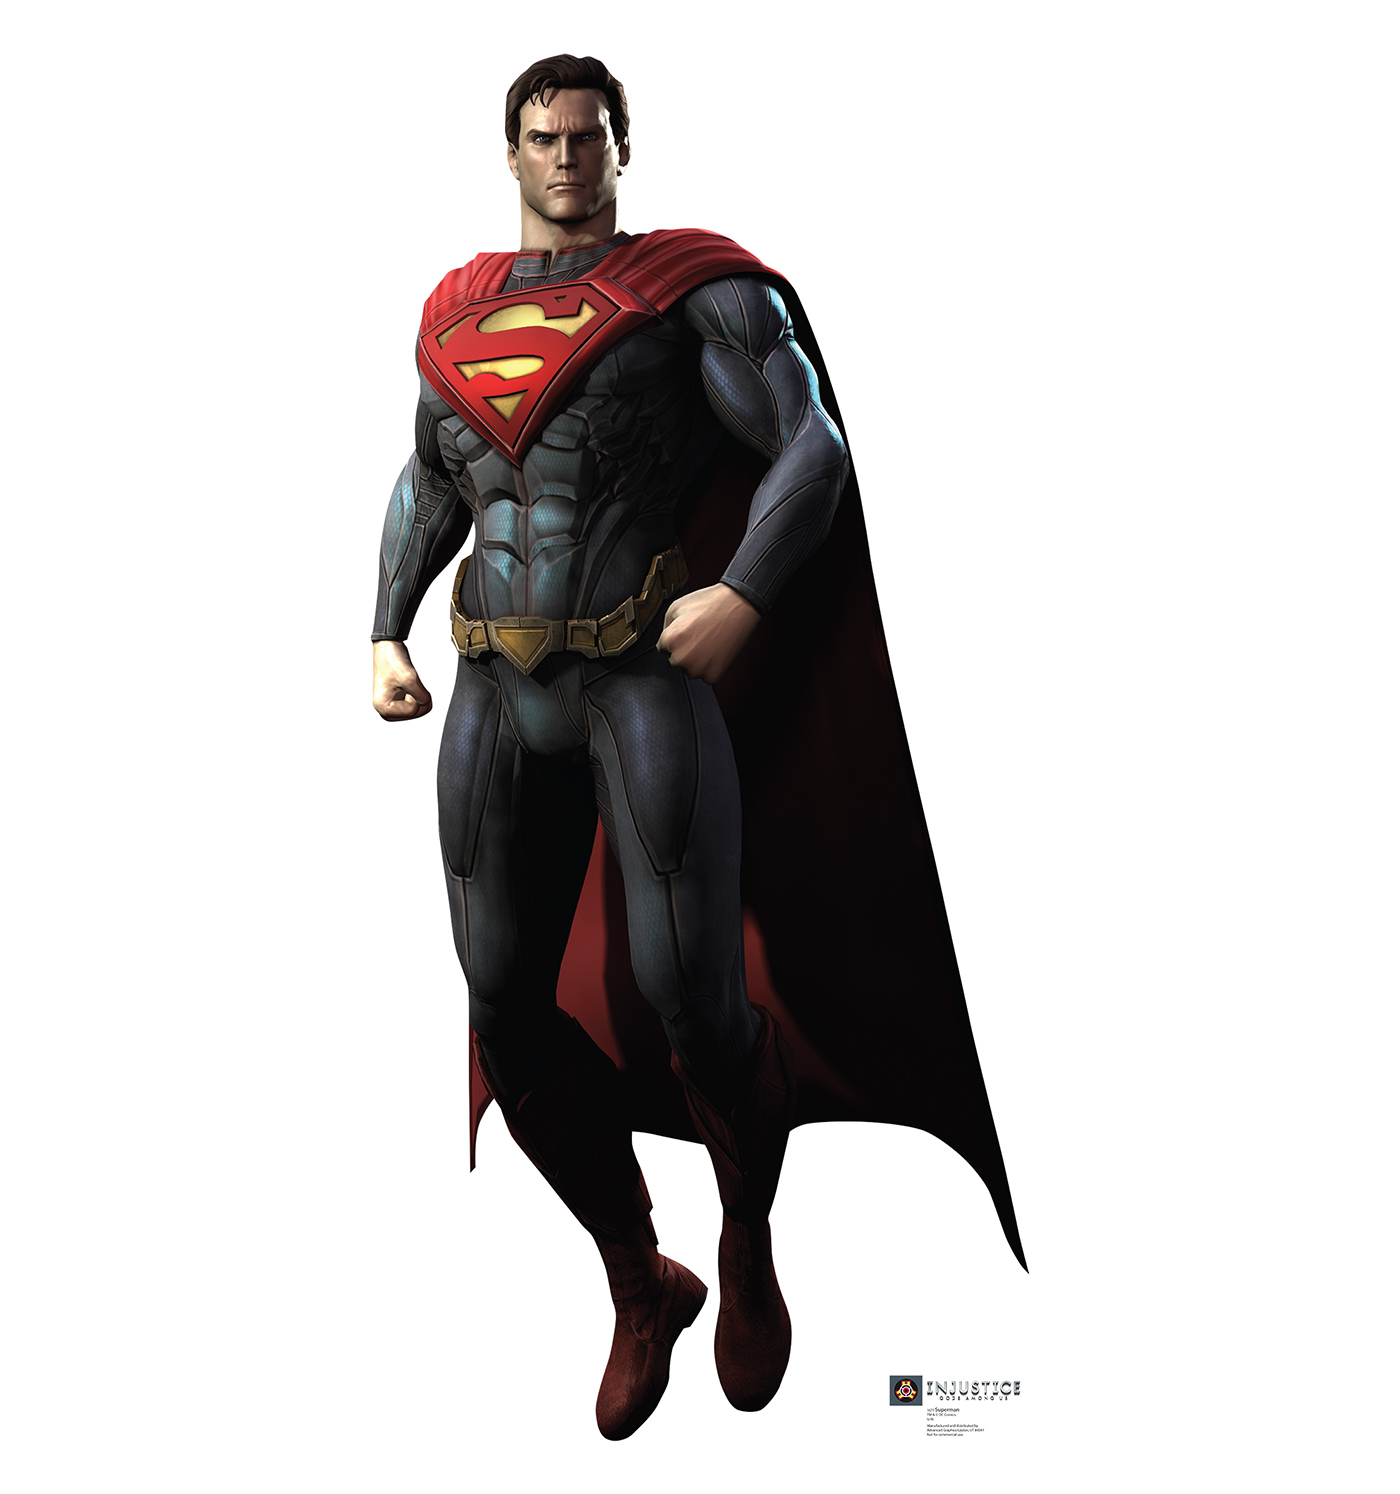 superman injustice gods among us superman photo. Black Bedroom Furniture Sets. Home Design Ideas